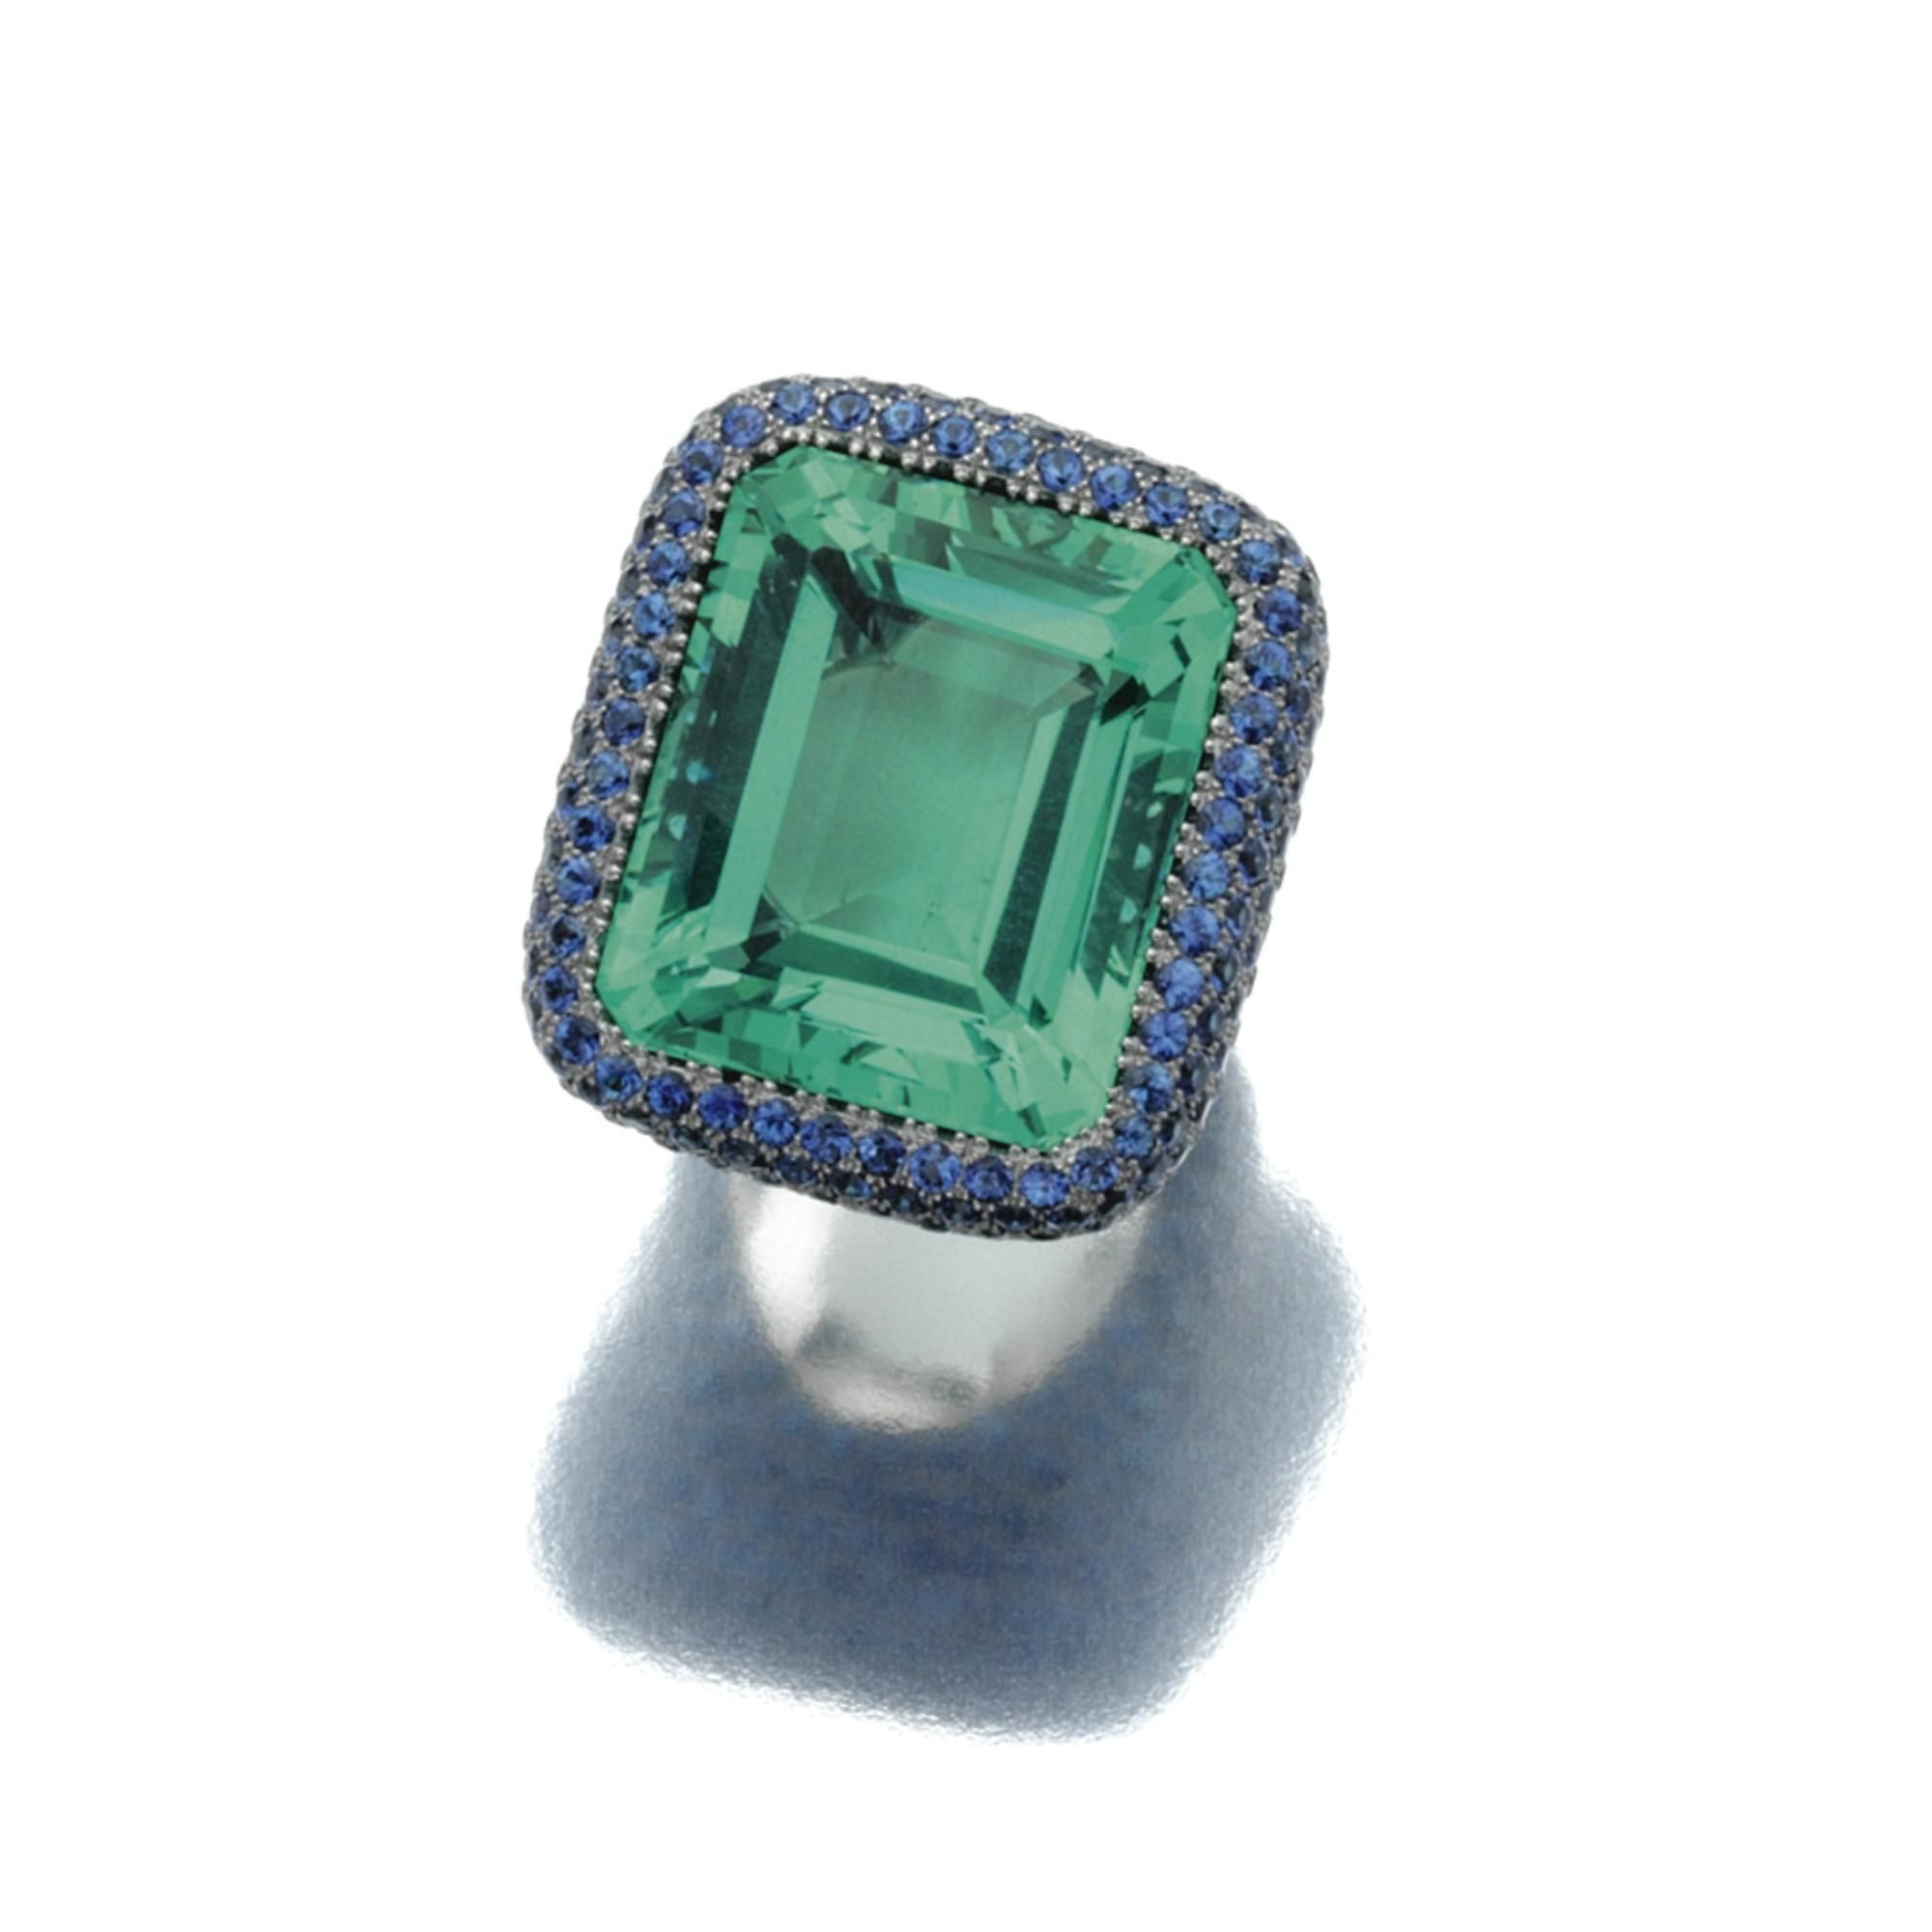 trivelling discover ring pin rings vuitton louis fluorite via